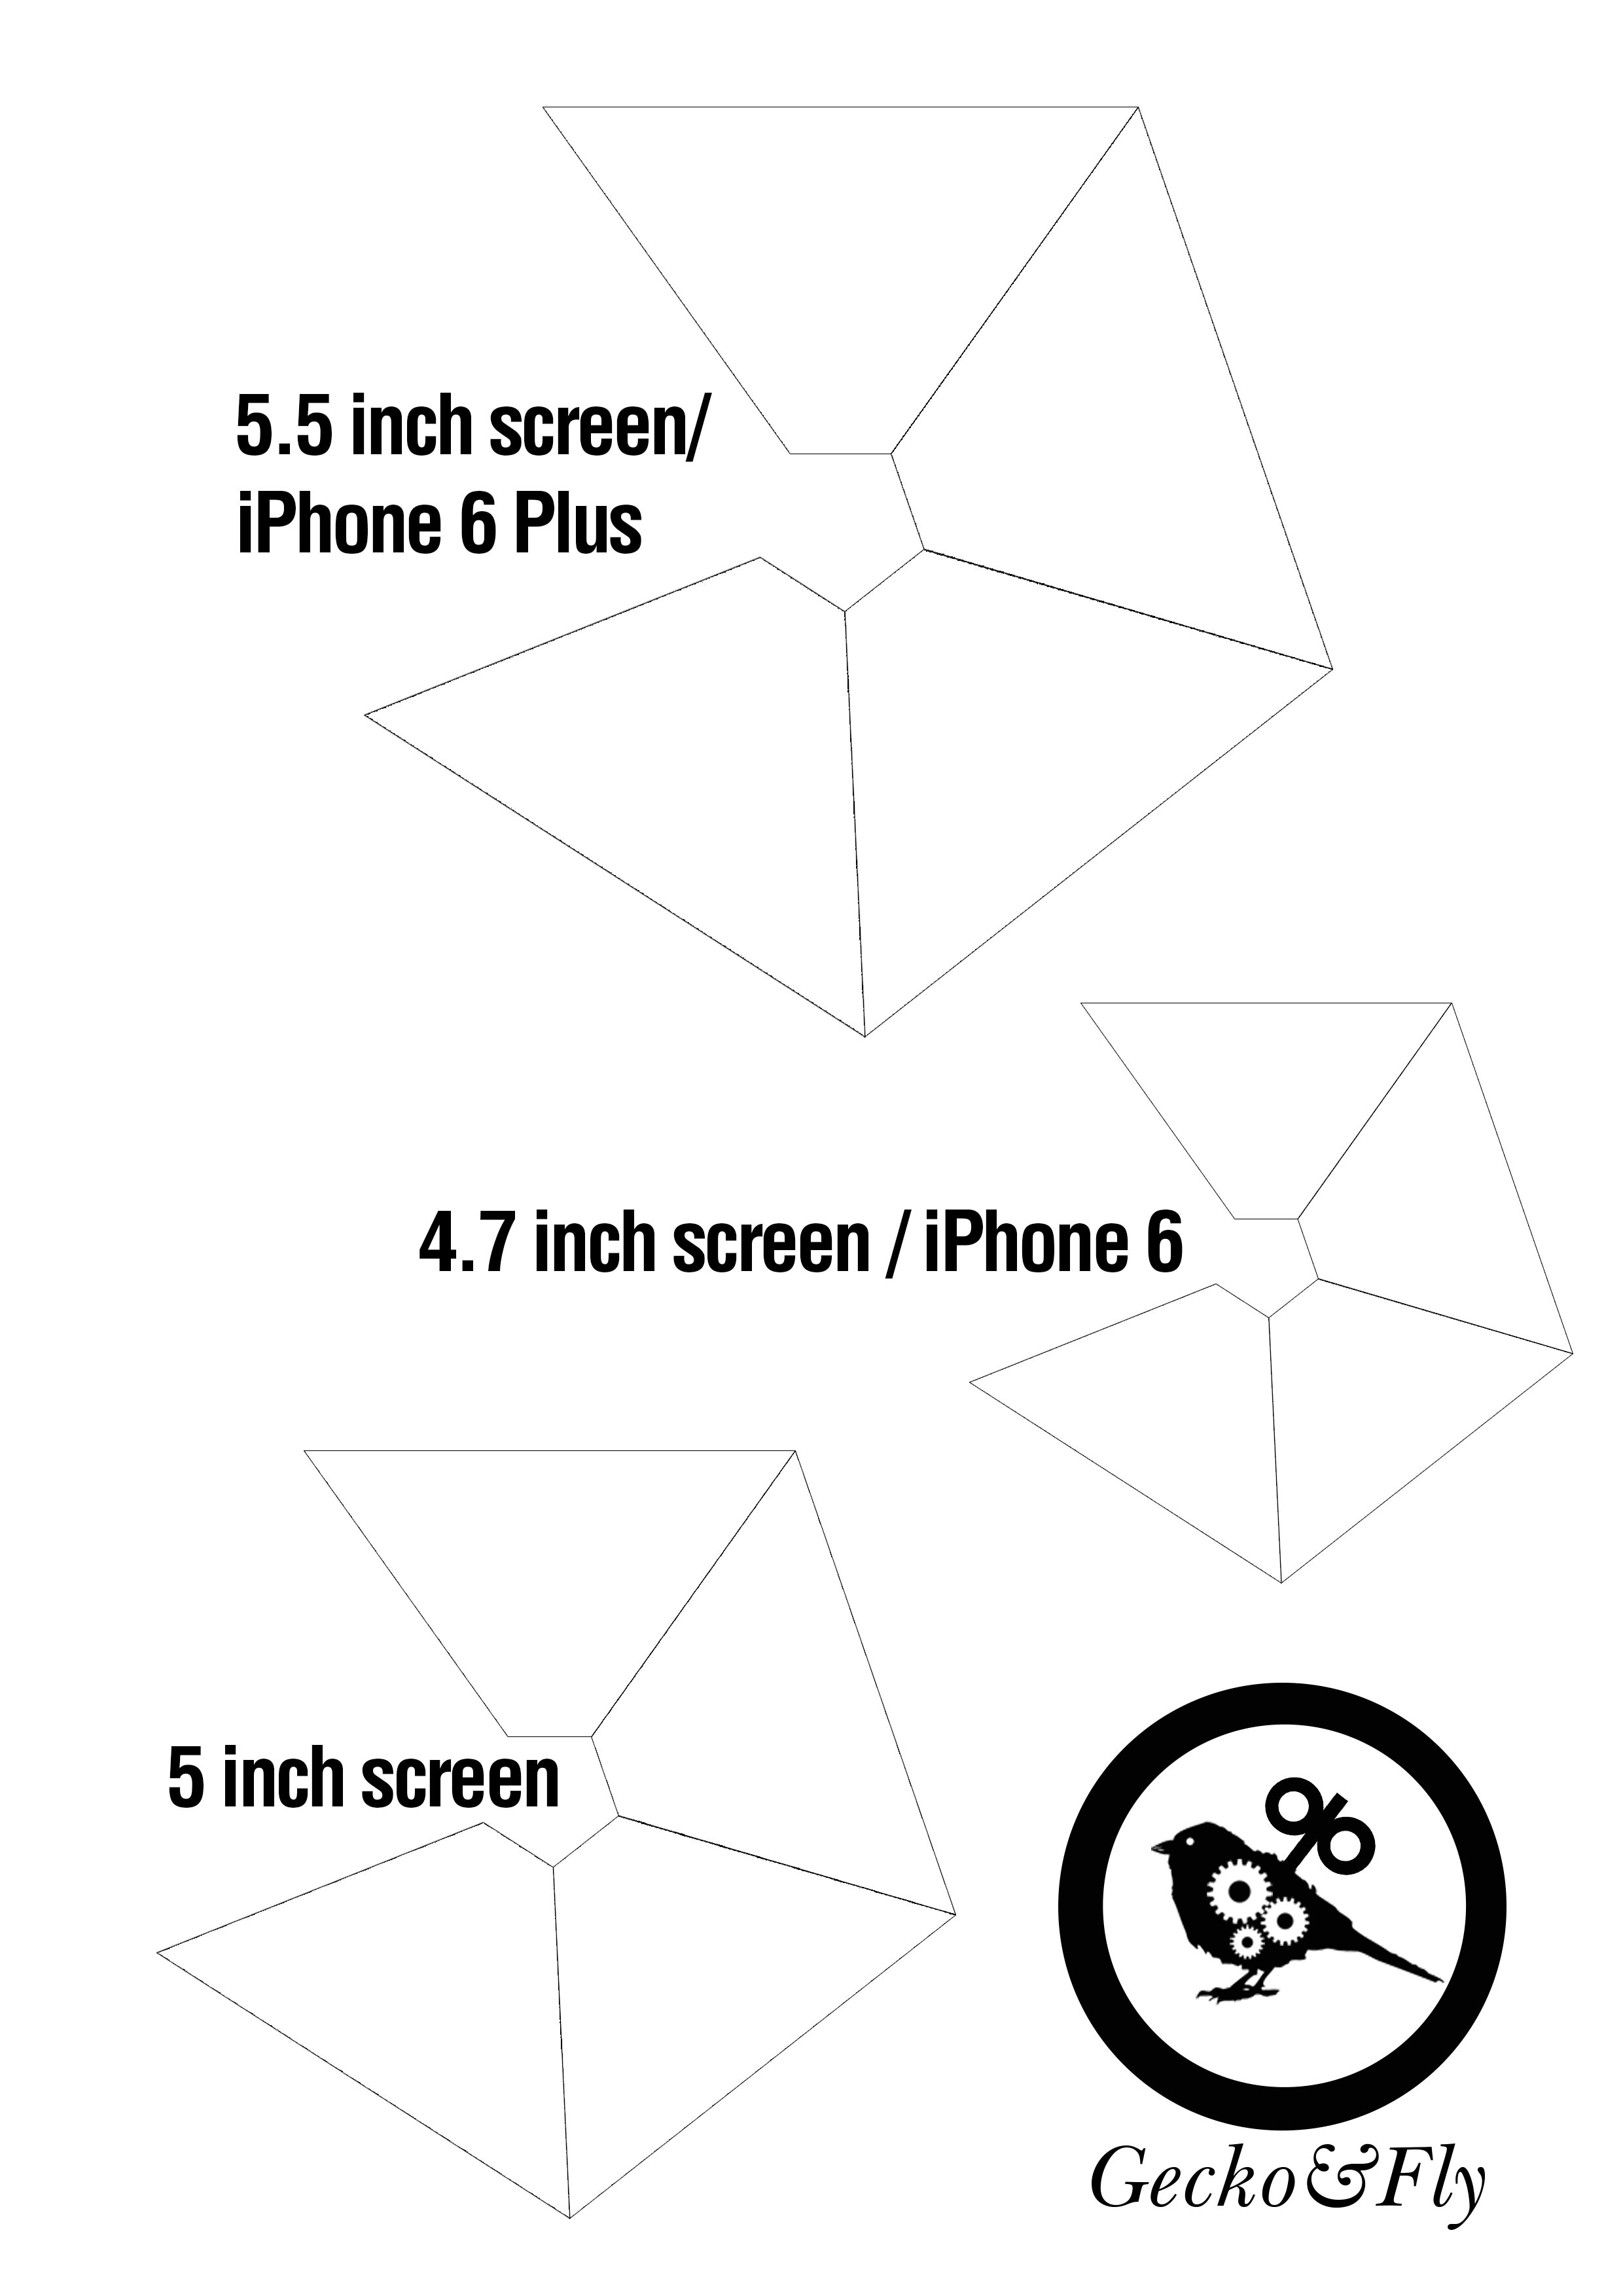 Download DIY 3D Hologram Template for Smartphone Created By GeckoandFly